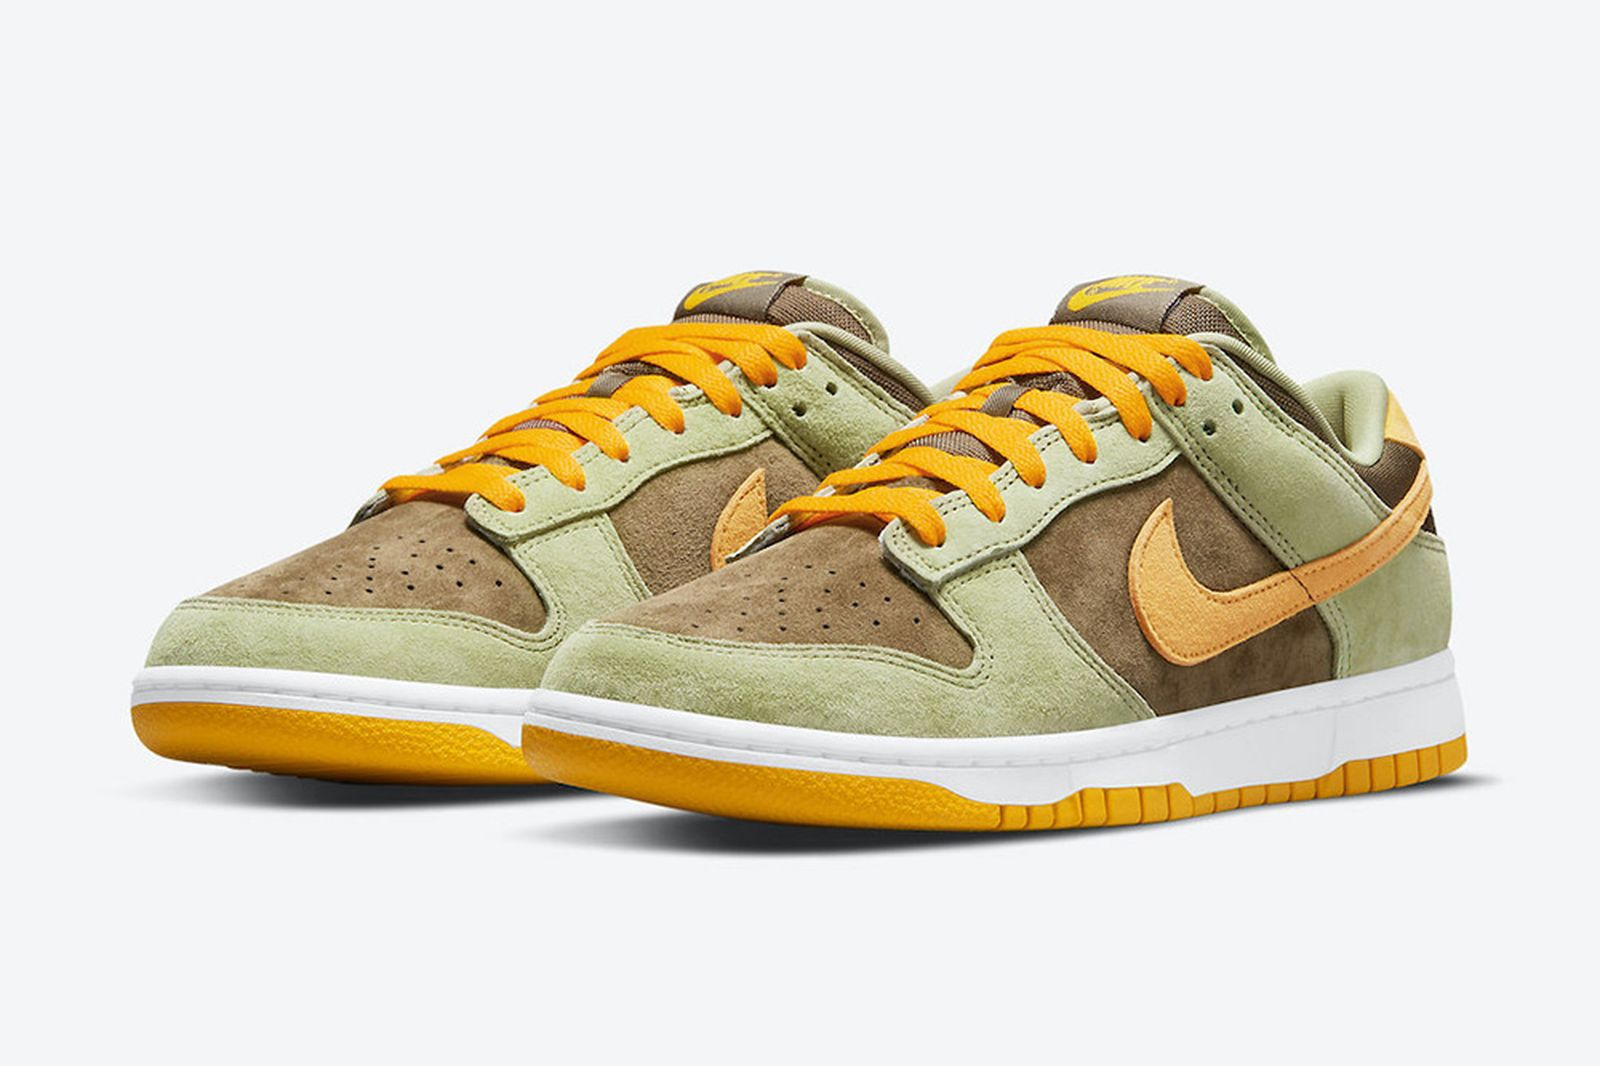 nike-dunk-low-dusty-olive-release-date-price-12